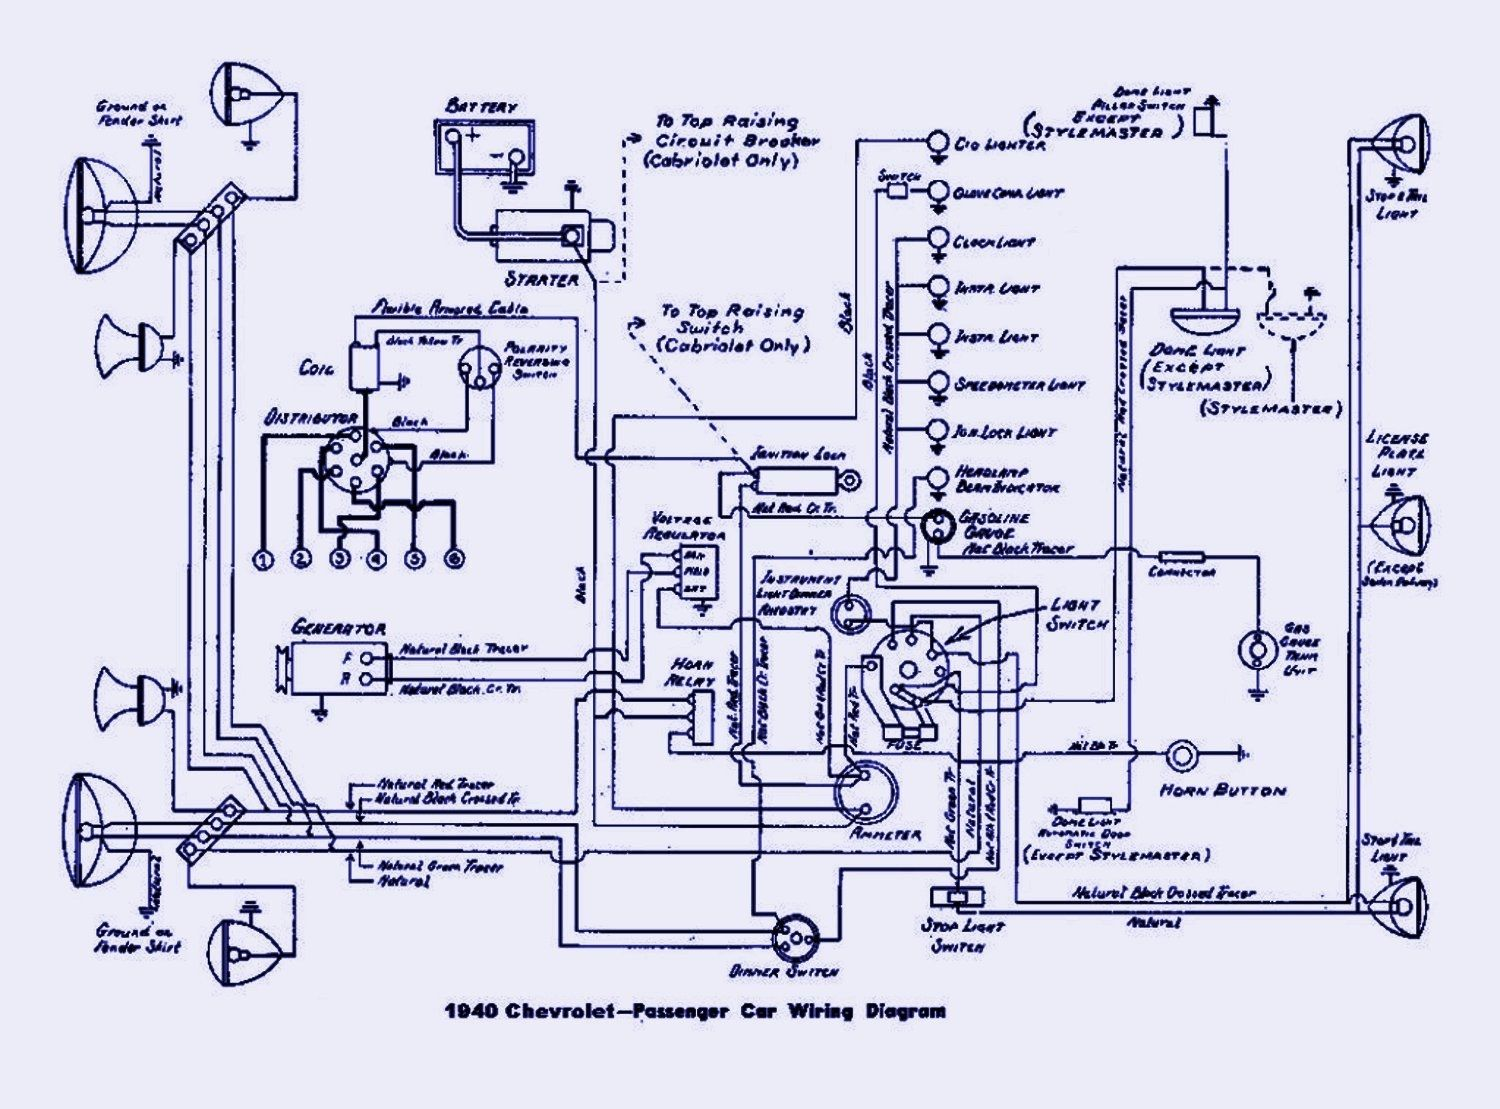 Automotive Wiring Diagrams Pdf - Wiring Diagrams on understanding schematics auto mobile, automotive pcm diagrams, understanding electrical diagrams, understanding automotive electrical systems, understanding a wiring diagram,